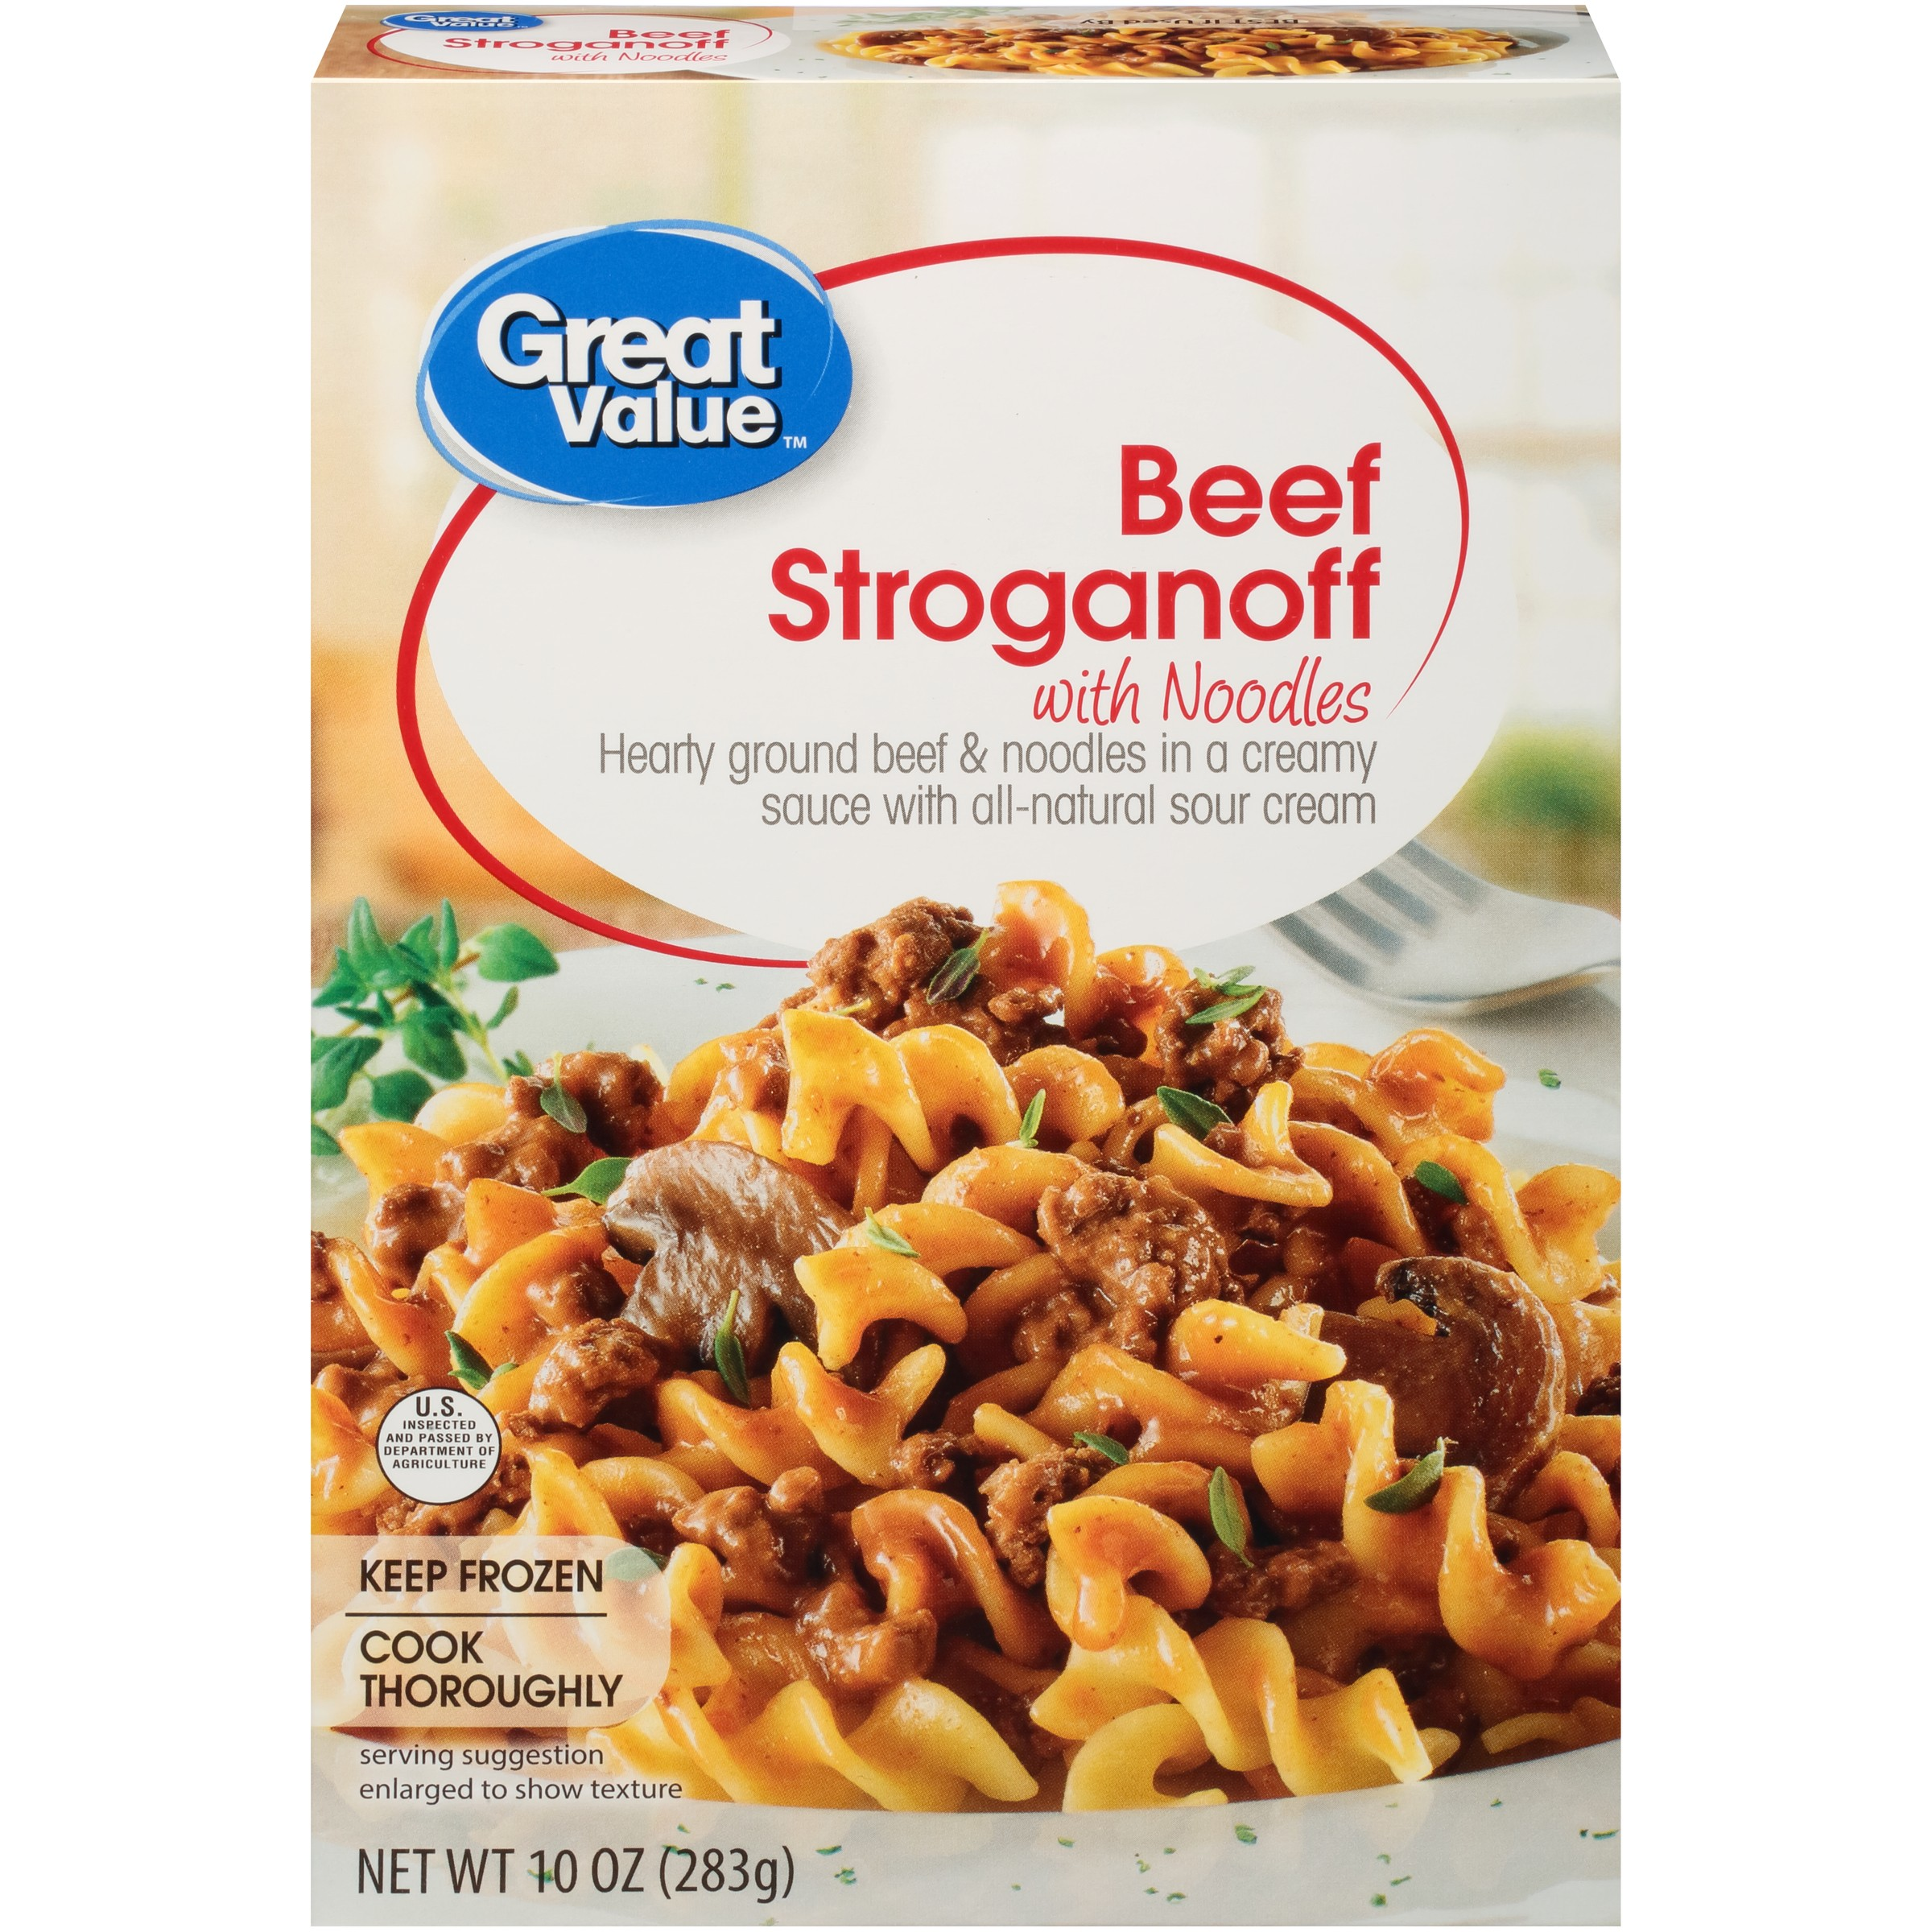 Great Value Beef Stroganoff with Noodles, 10 oz